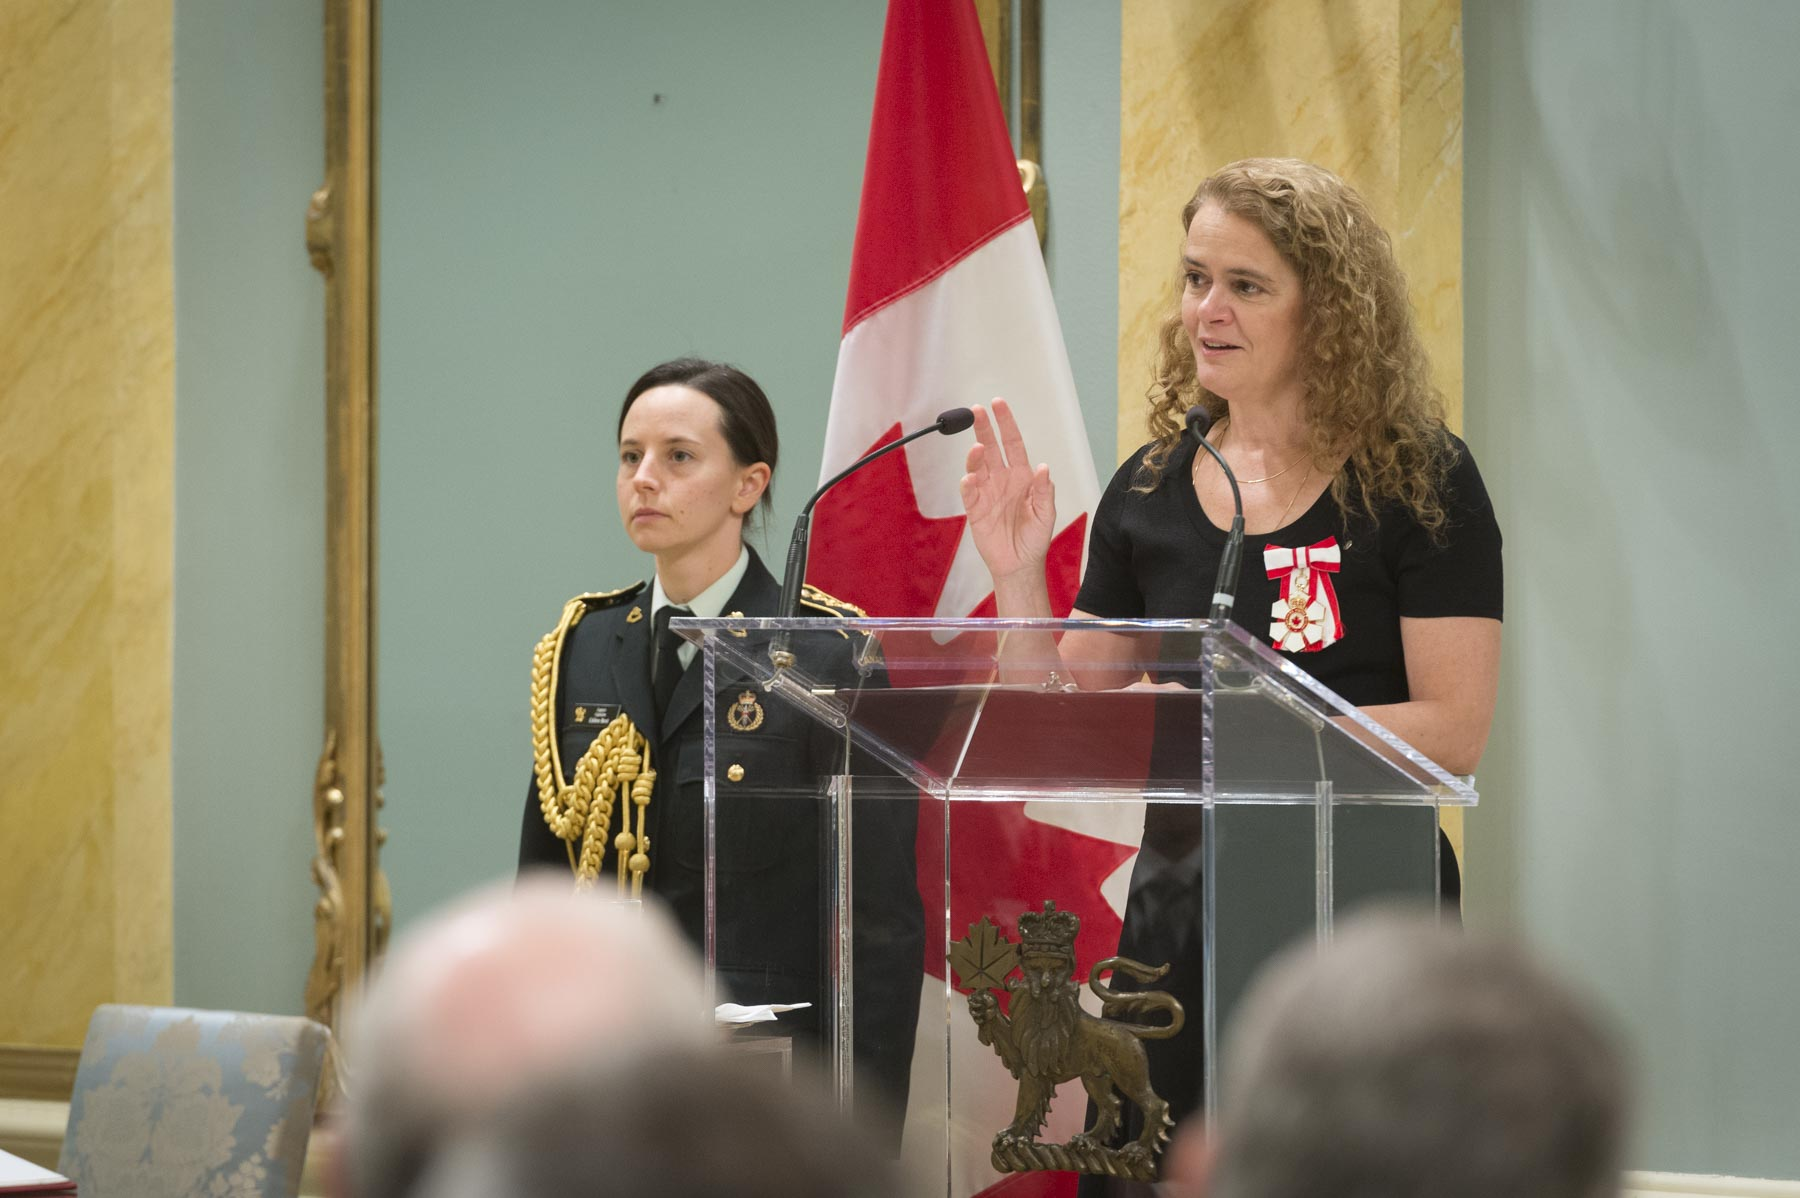 At the beginning of the ceremony, Her Excellency thanked the recipients for their acts of bravery.